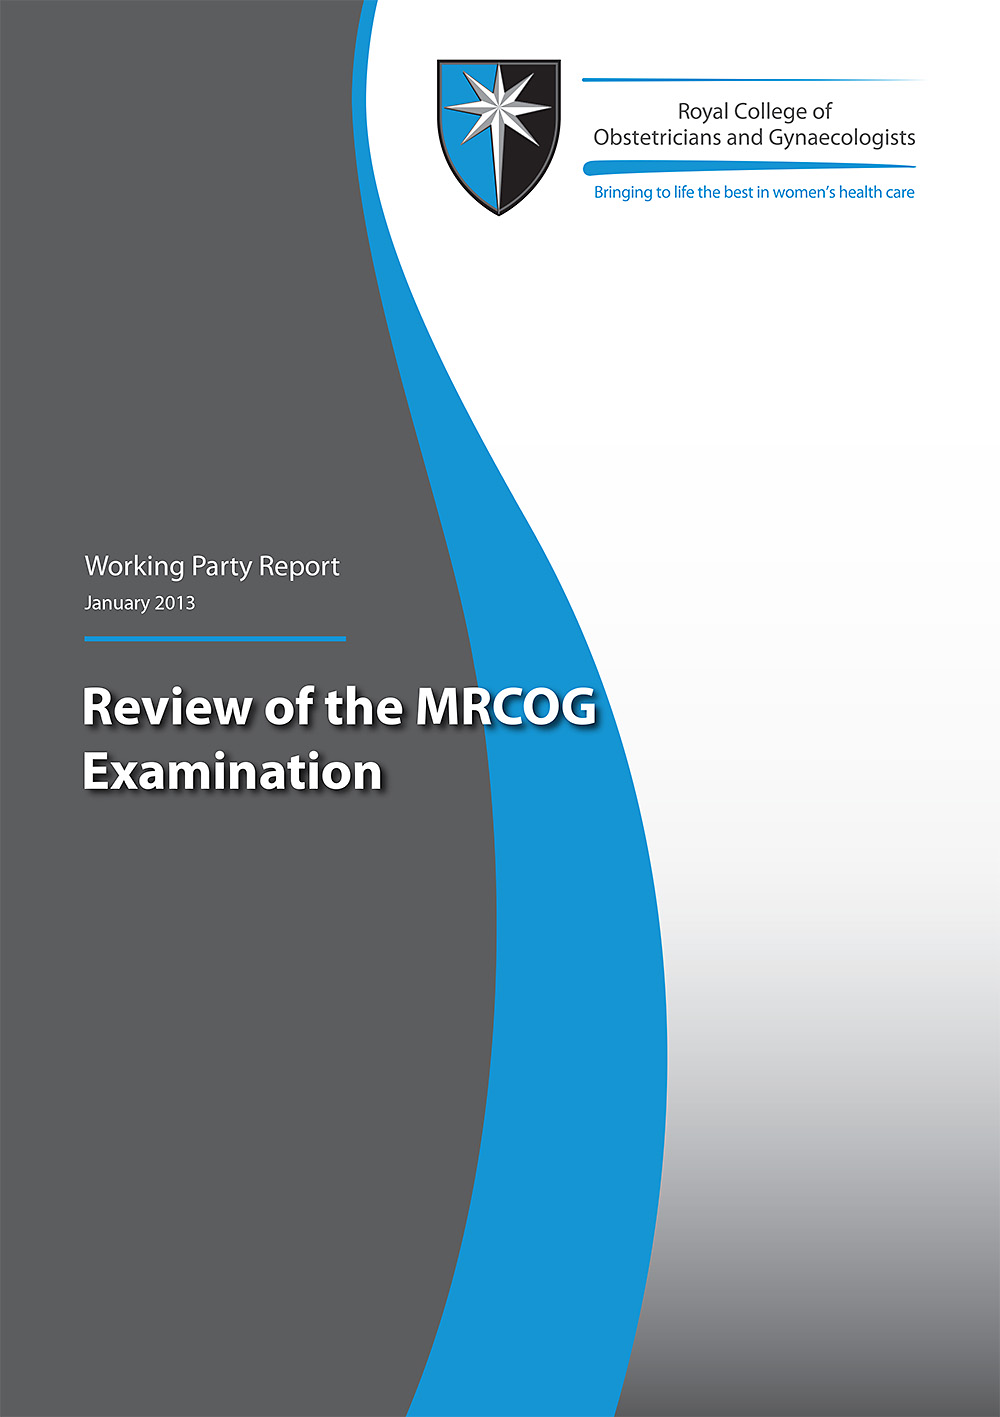 review of the mrcog examination andrew welsh review of the mrcog examination front cover